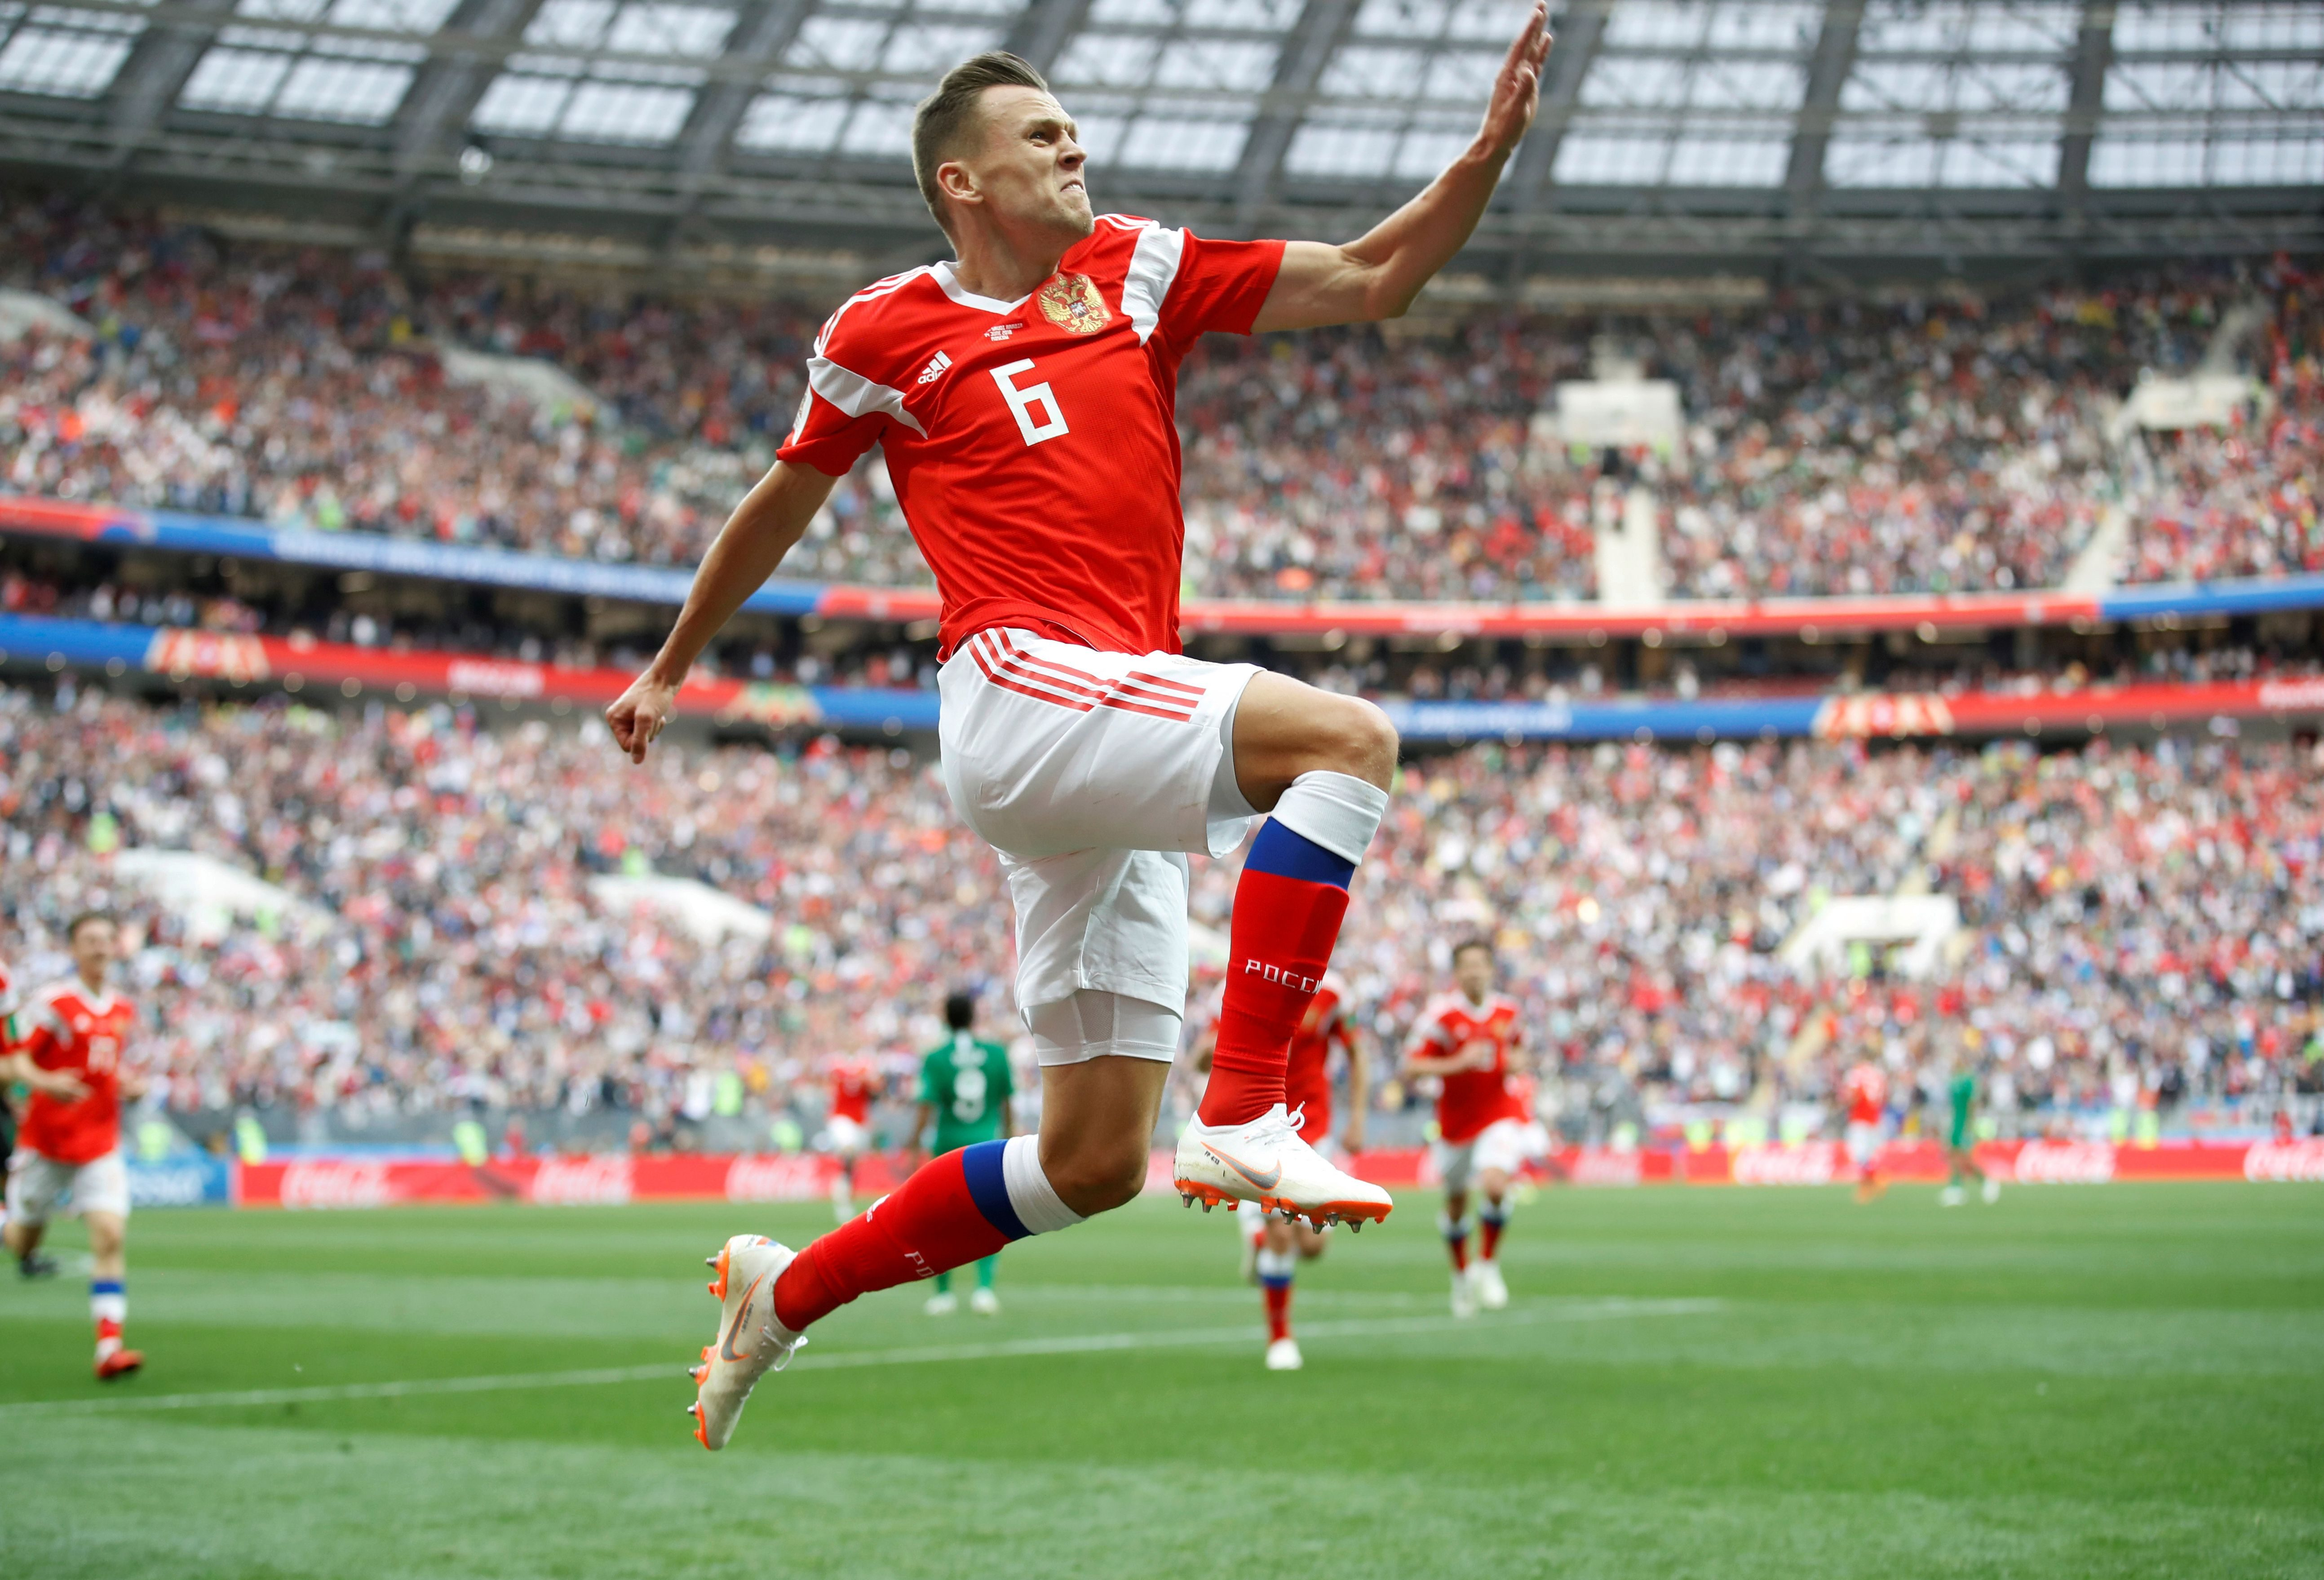 Soccer Football - World Cup - Group A - Russia vs Saudi Arabia - Luzhniki Stadium, Moscow, Russia - June 14, 2018   Russia's Denis Cheryshev celebrates scoring their second goal      REUTERS/Carl Recine     TPX IMAGES OF THE DAY - RC12B7E41520